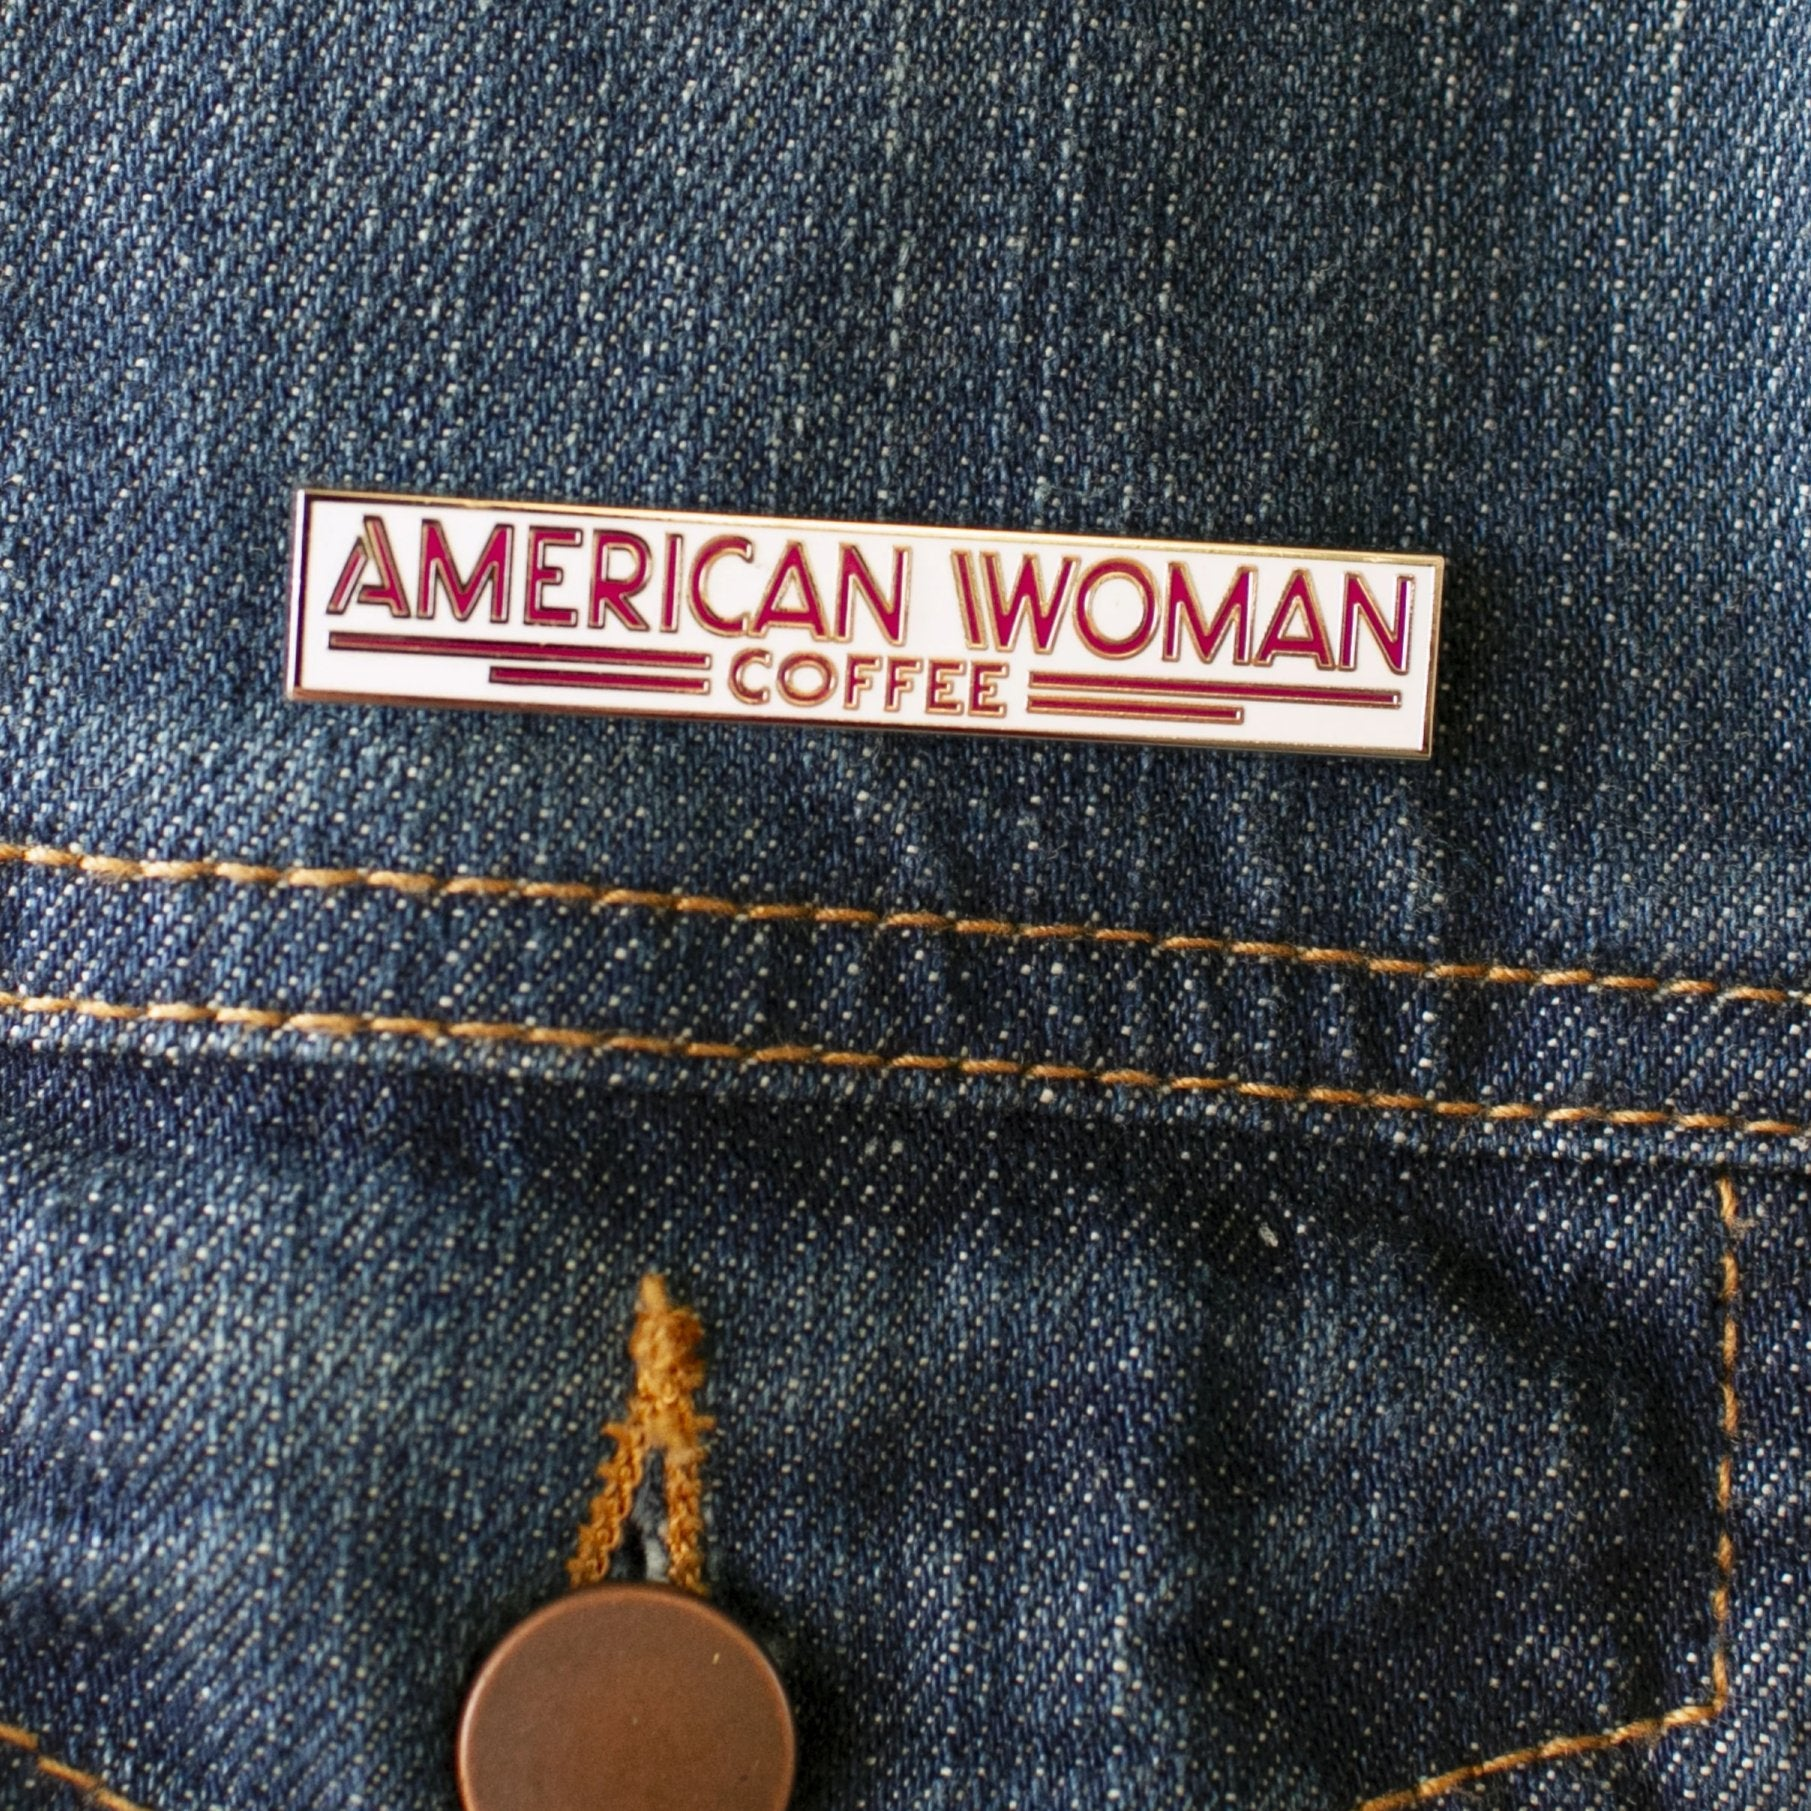 American Woman Coffee Enamel Pin